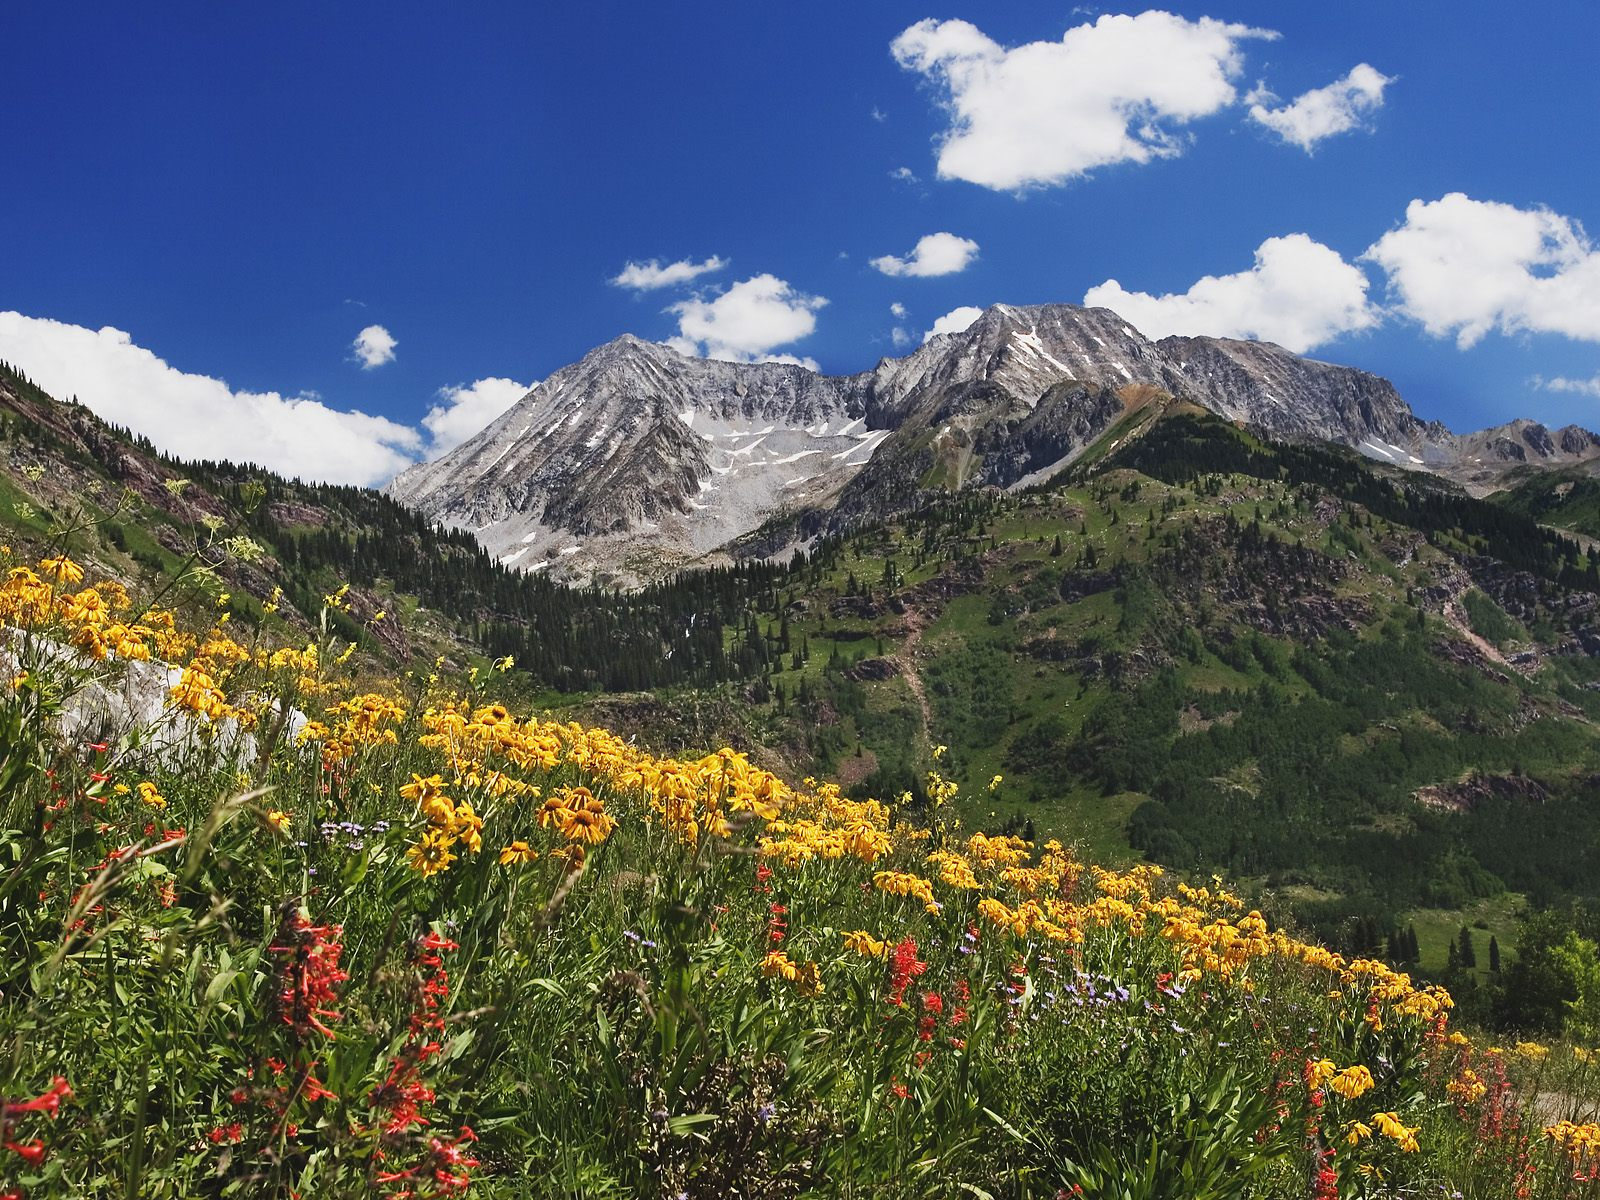 http://4.bp.blogspot.com/-un3A6xsPhNk/TbW1aXhXp8I/AAAAAAAACl4/AdhuH1H44Dw/s1600/Spring_Wildflowers_in_Alpine_Meadow_at_Lead_King_Basin.jpg